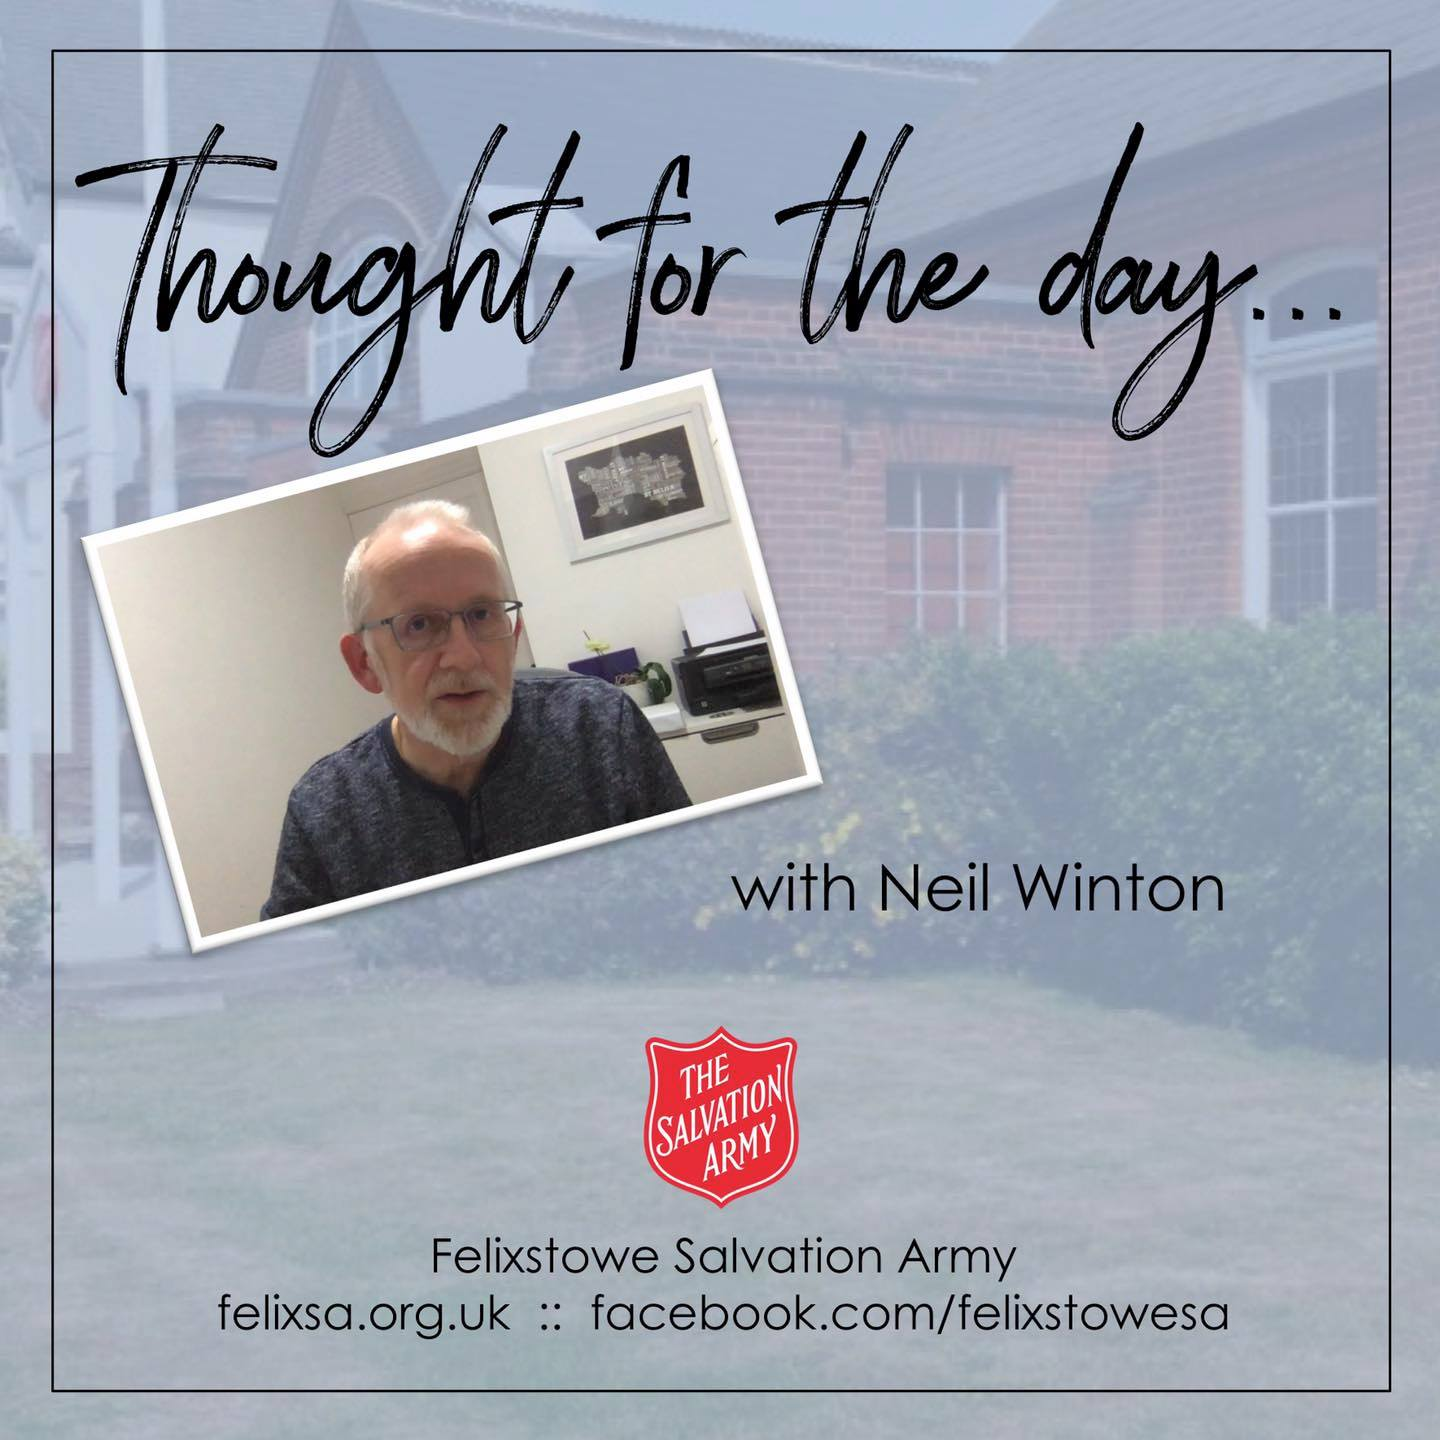 Thought for the Day with Neil Winton